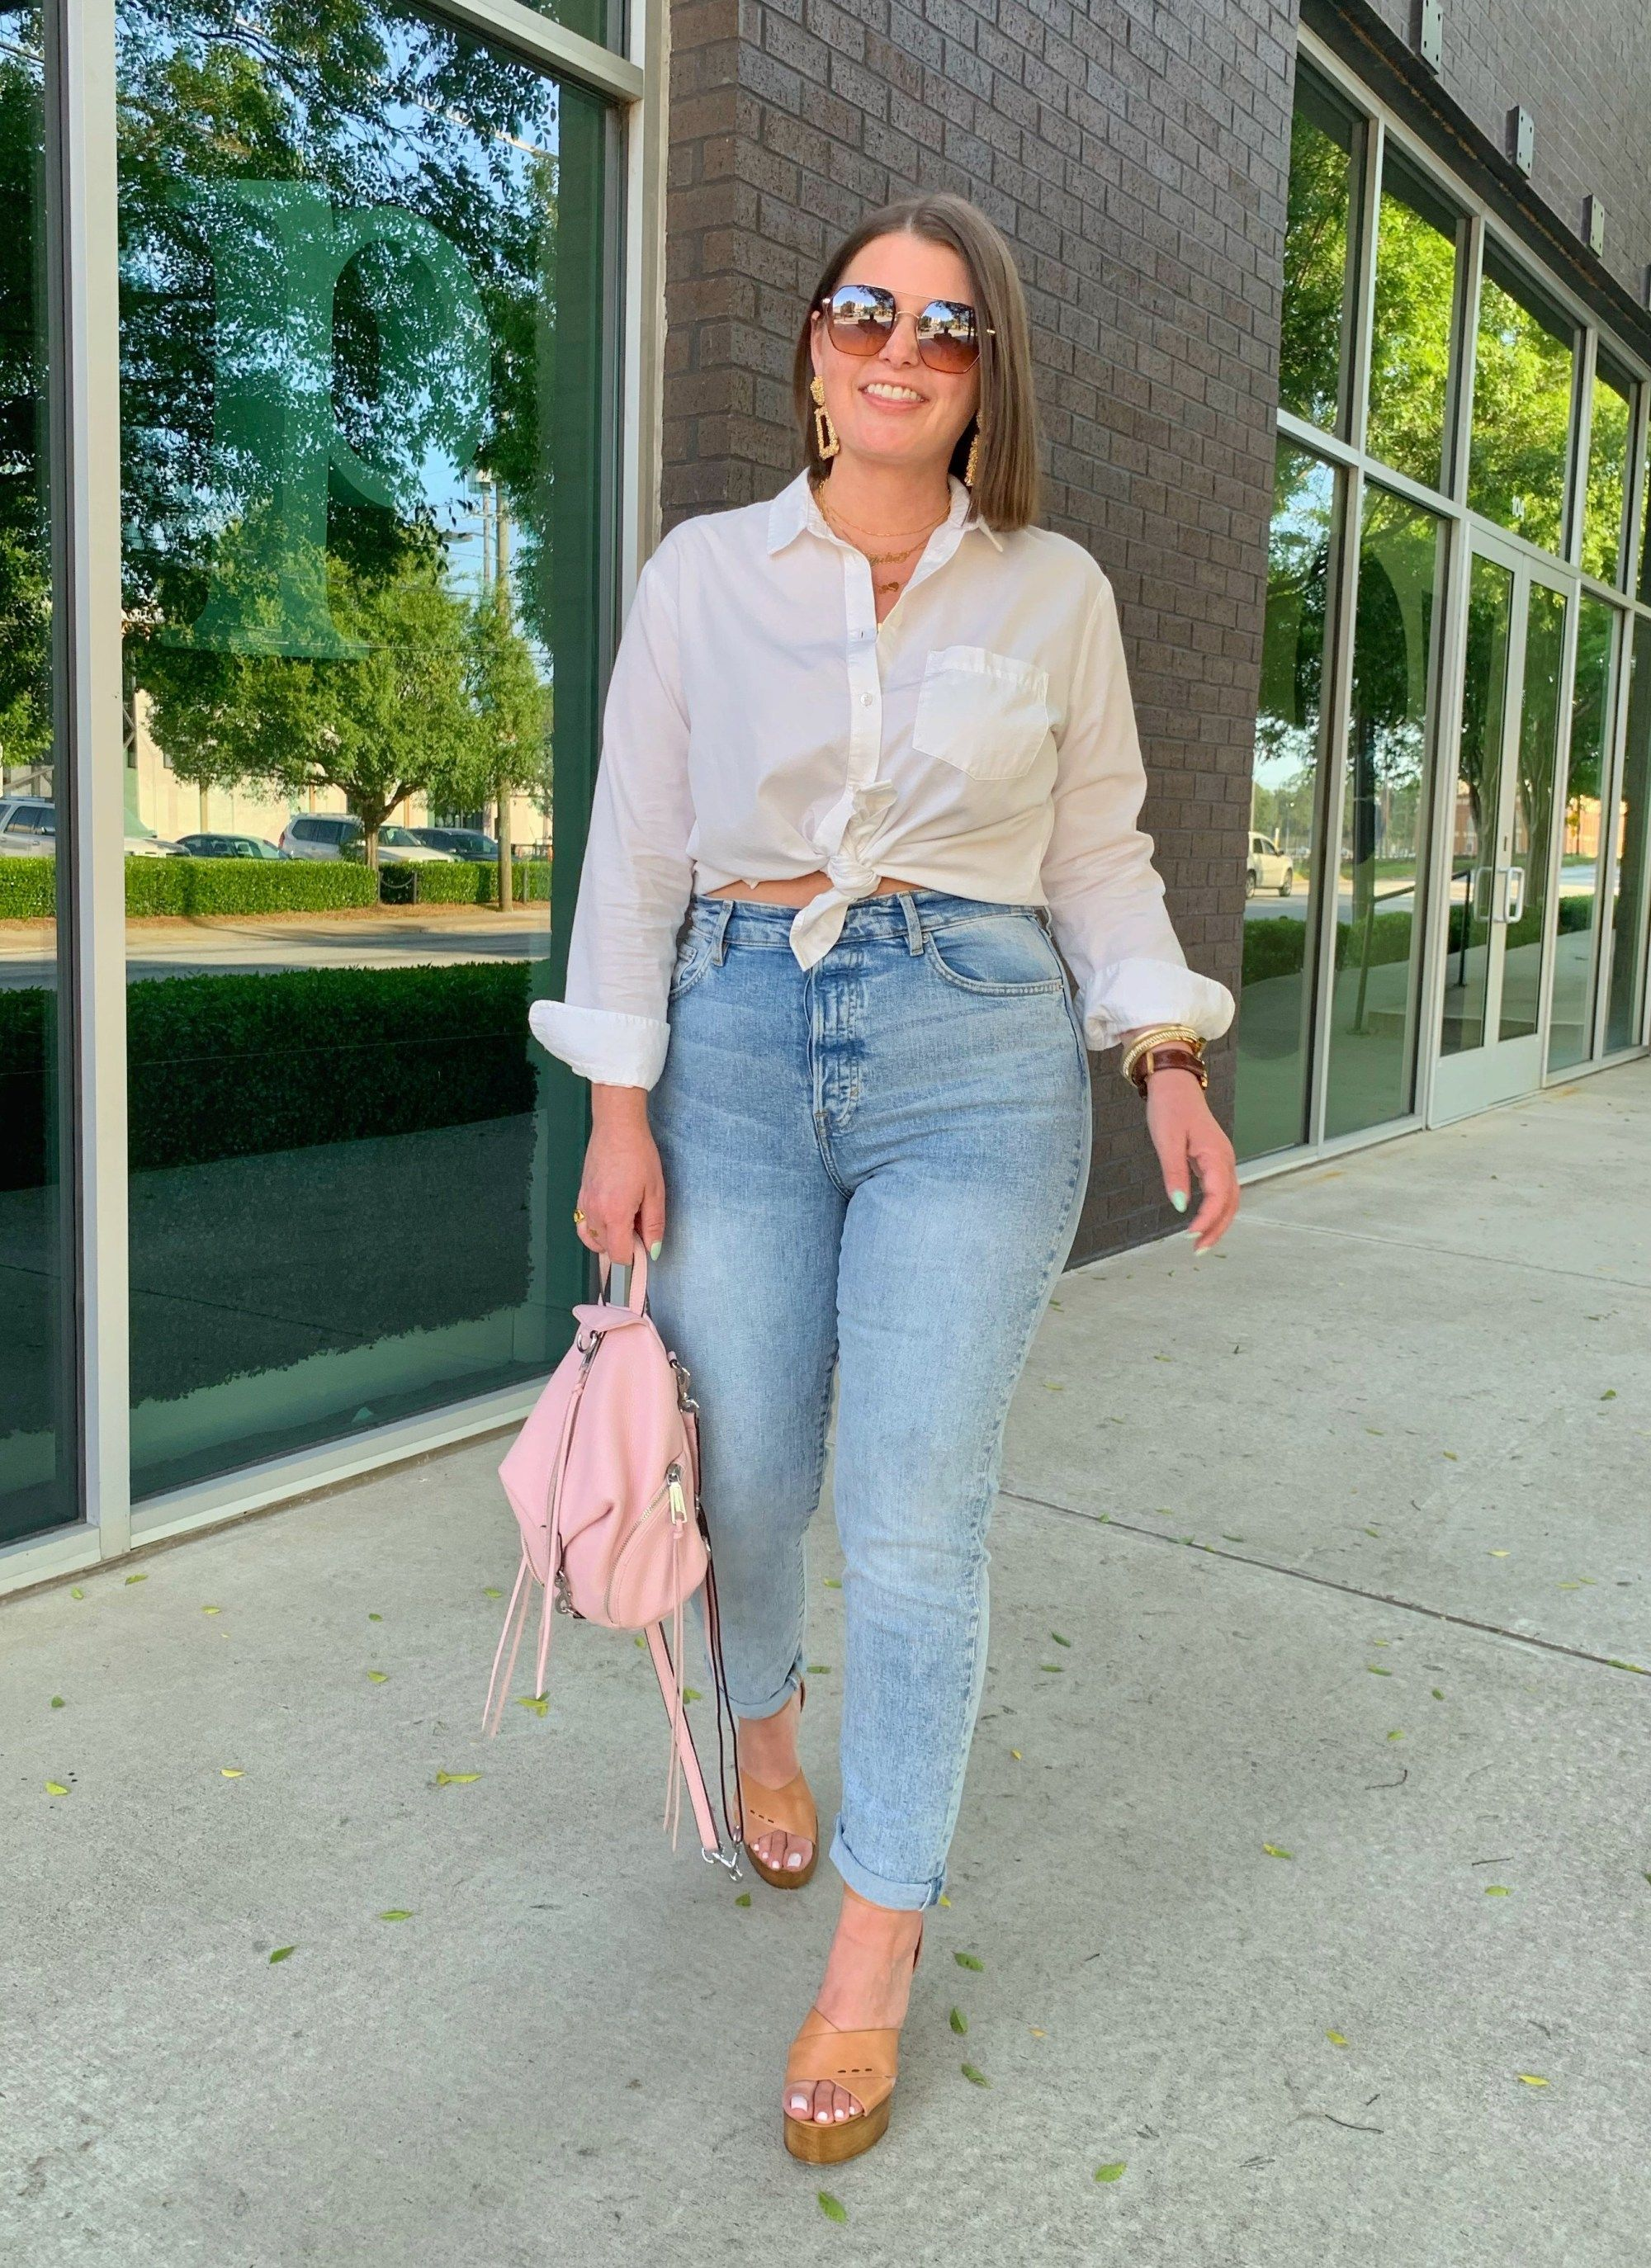 How to wear mom jeans with curves and not look frumpy